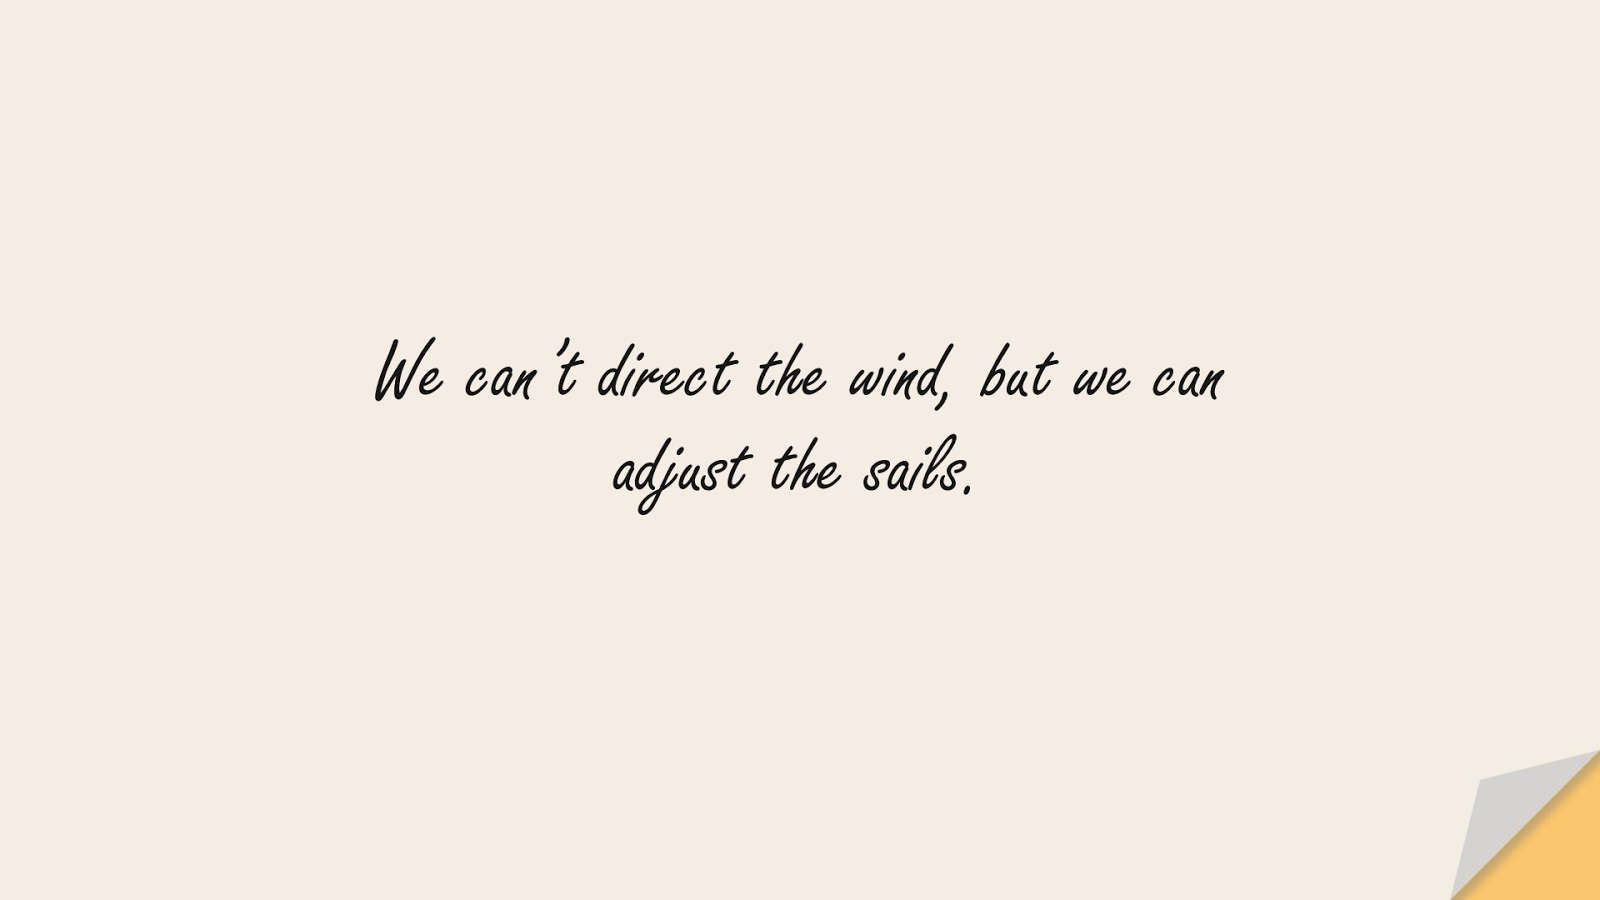 We can't direct the wind, but we can adjust the sails.FALSE